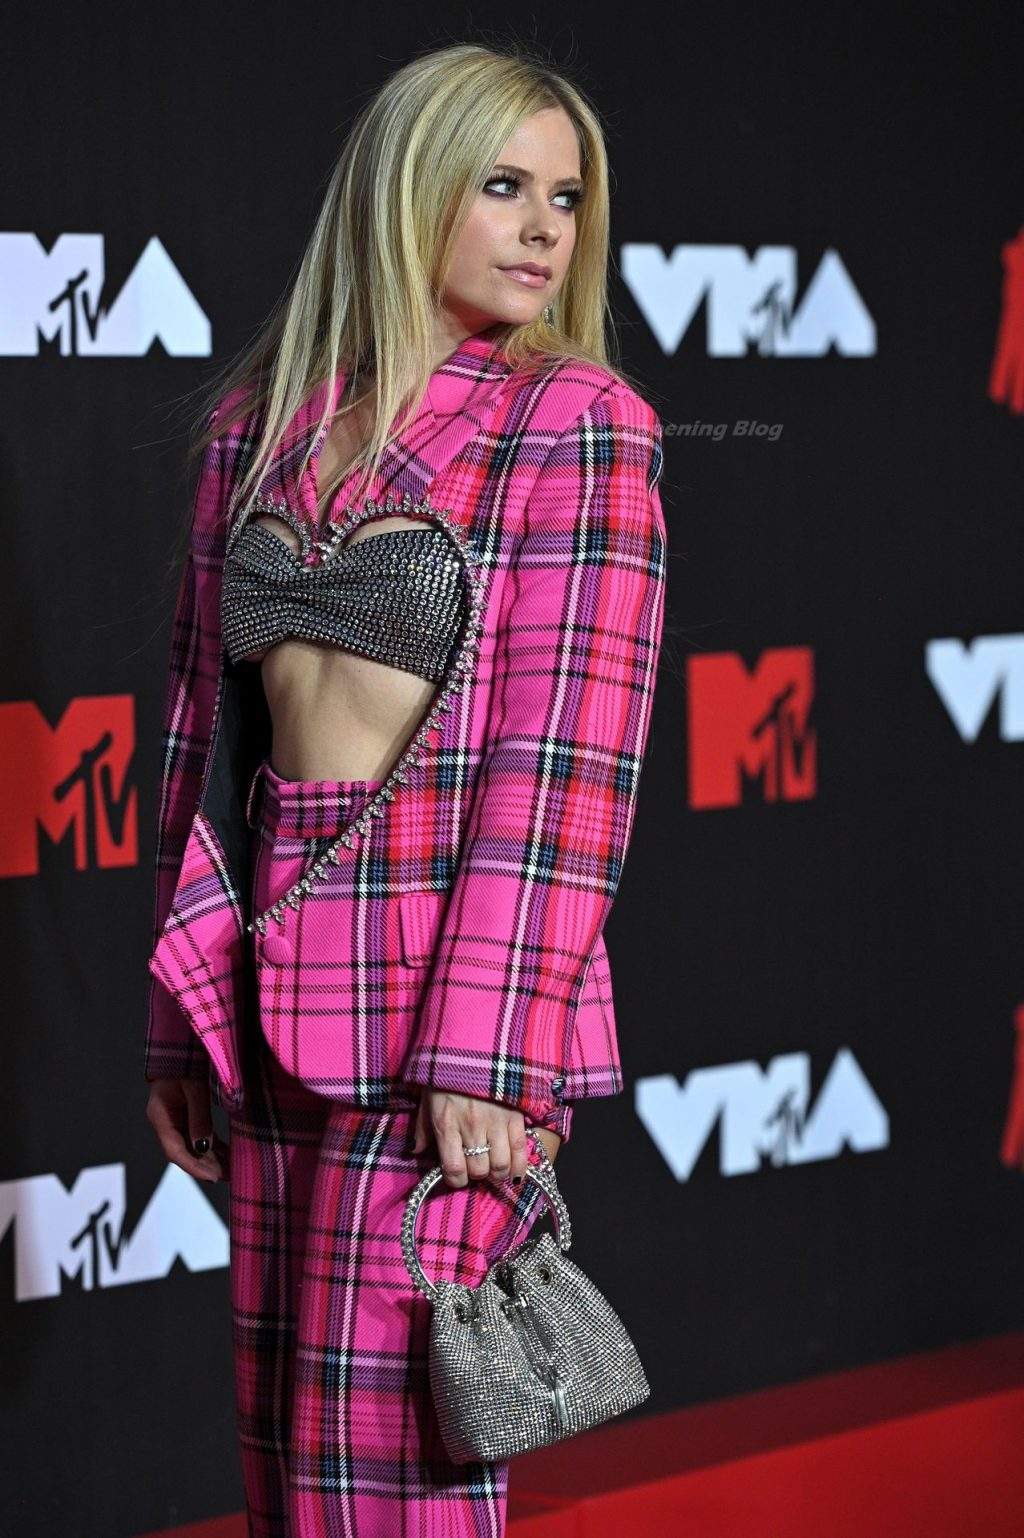 Avril Lavigne Looks Hot at the 2021 MTV Video Music Awards (30 Photos + Video)